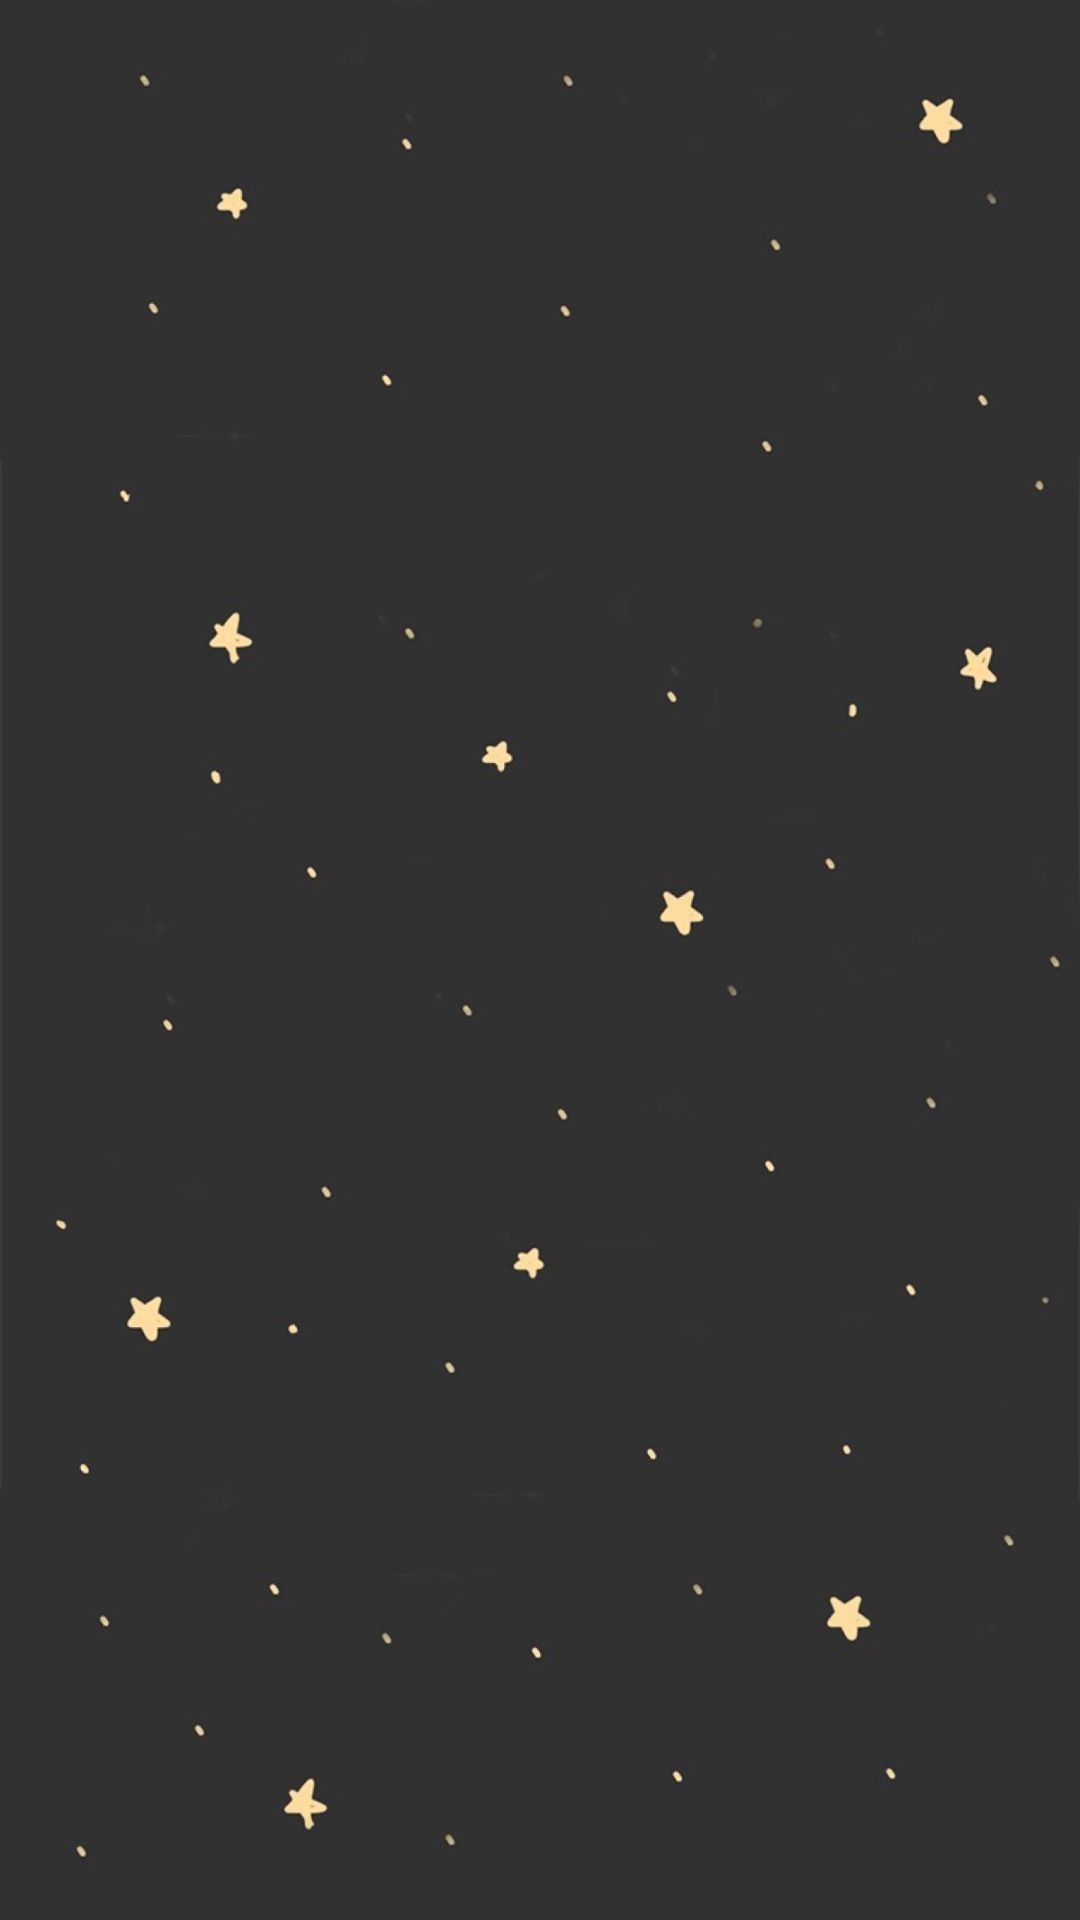 Dark Space Iphone Wallpaper Download Cute Wallpapers Aesthetic Iphone Wallpaper Iphone Background Wallpaper